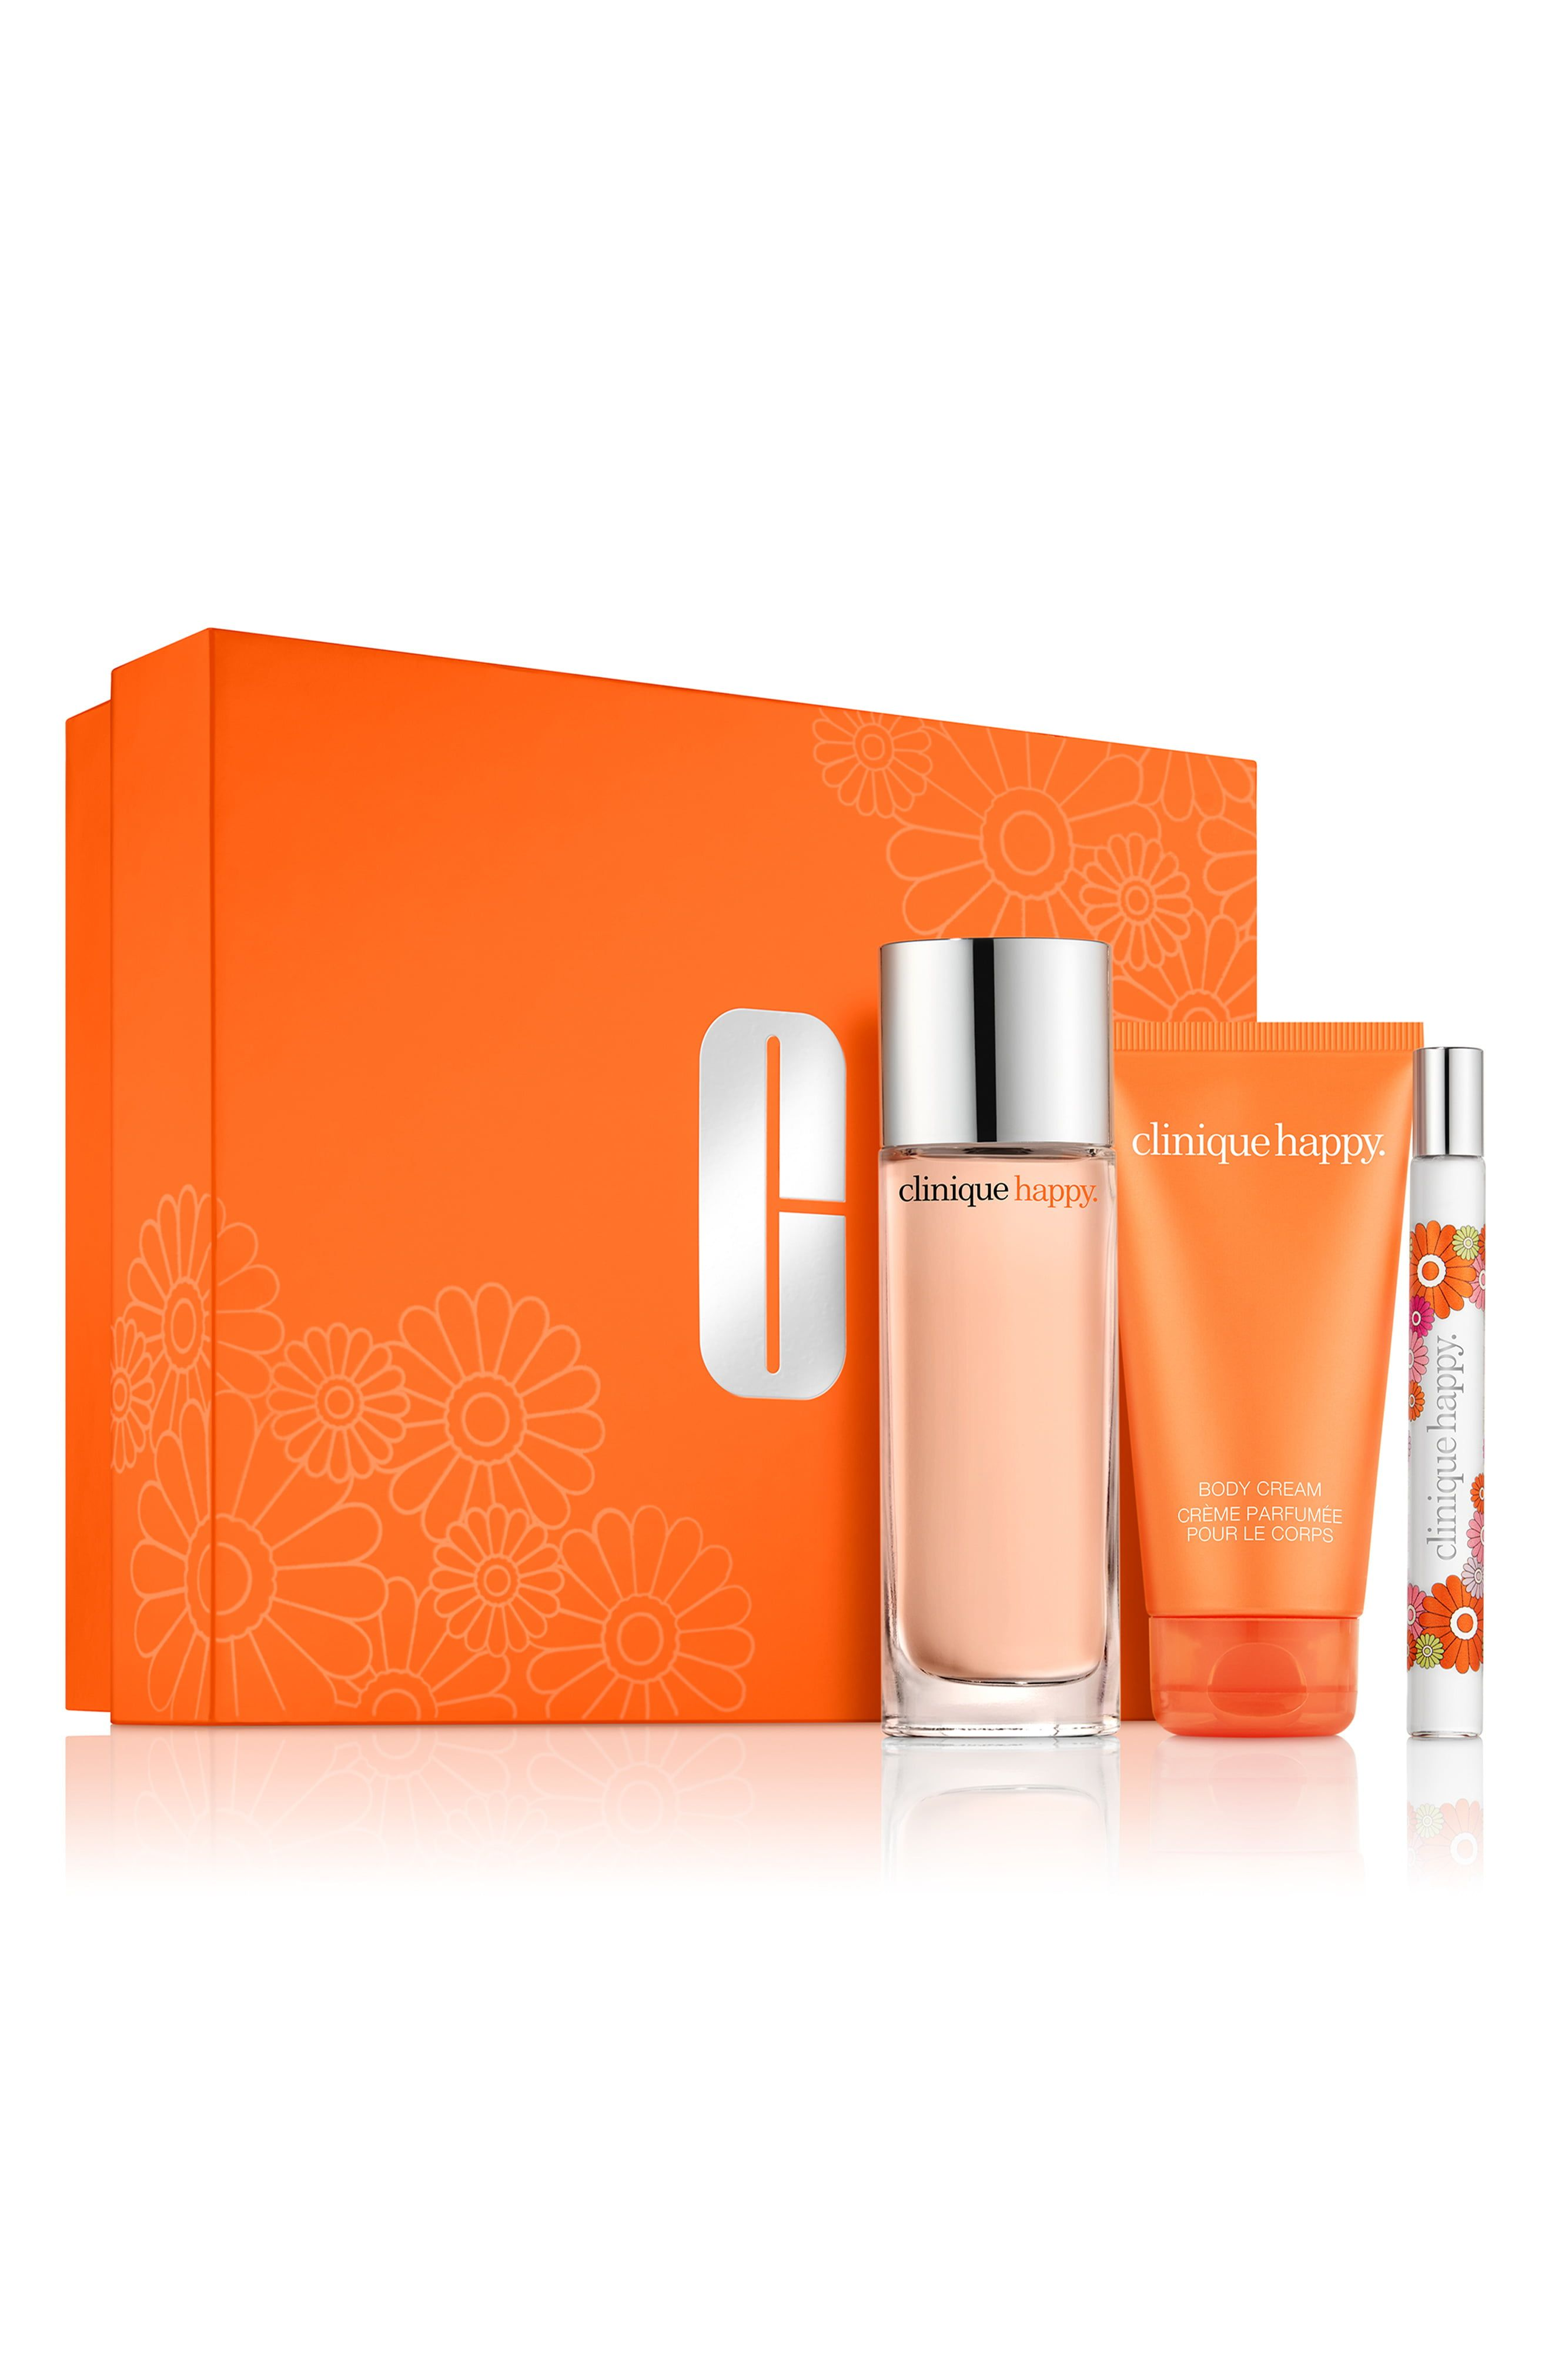 Clinique Perfectly Happy Set in 2020 Happy perfume